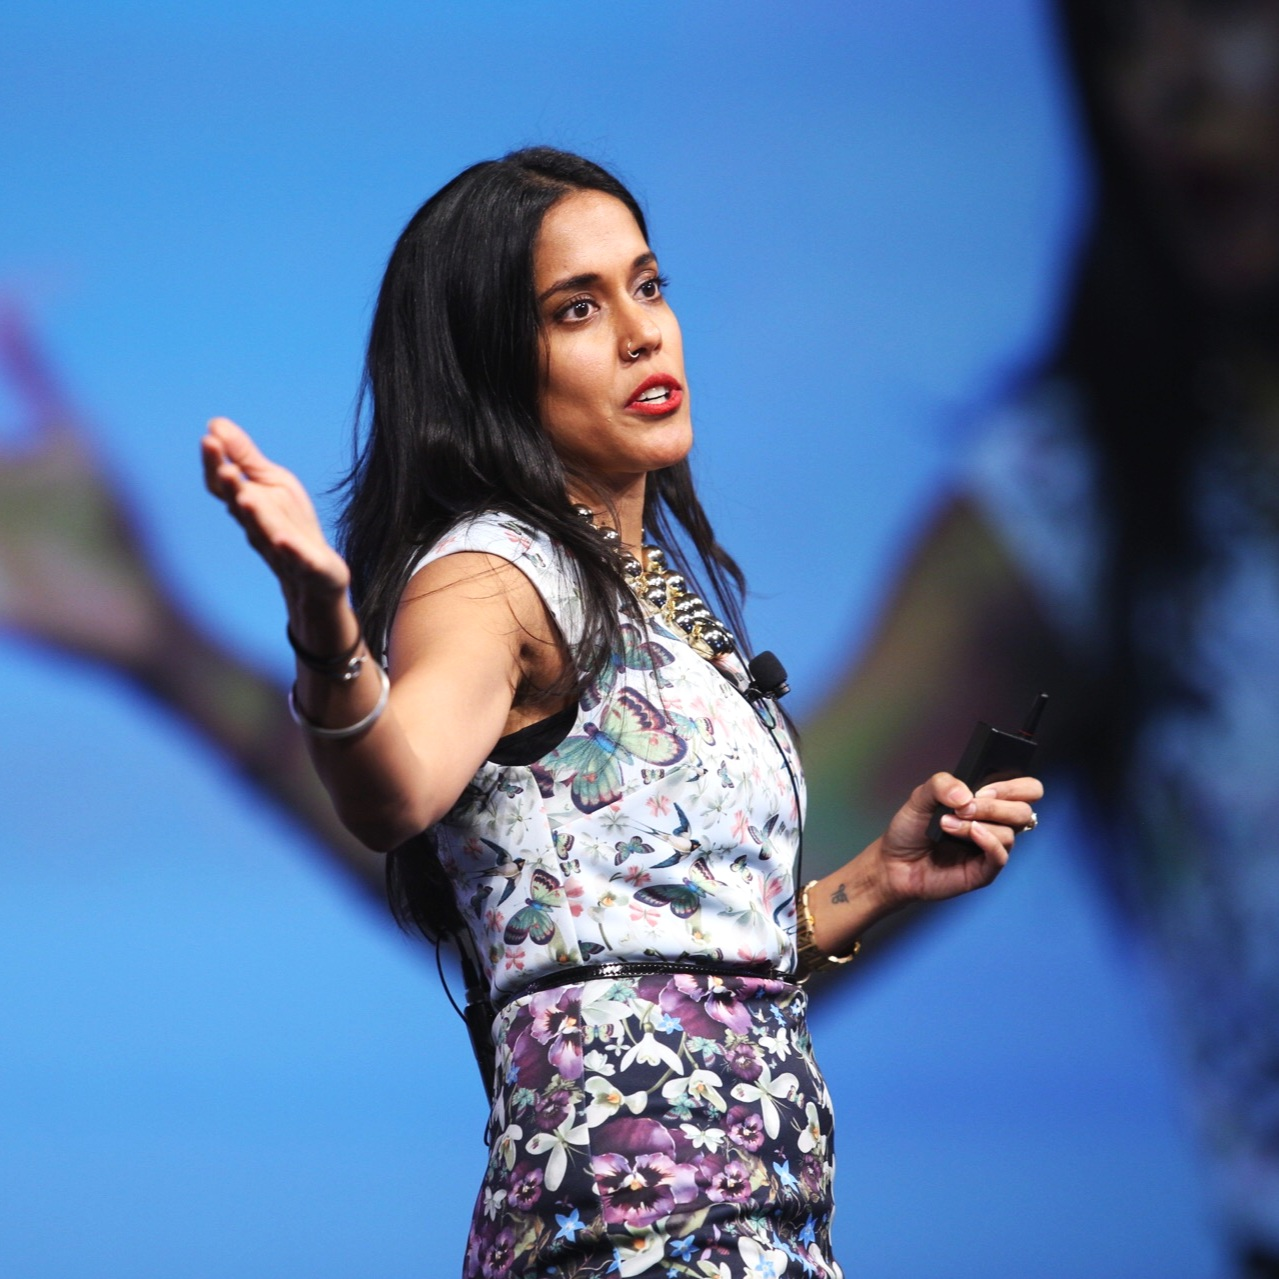 Ritu Bhasin wearing a fitted purple floral dress standing on a stage speaking to a crowd